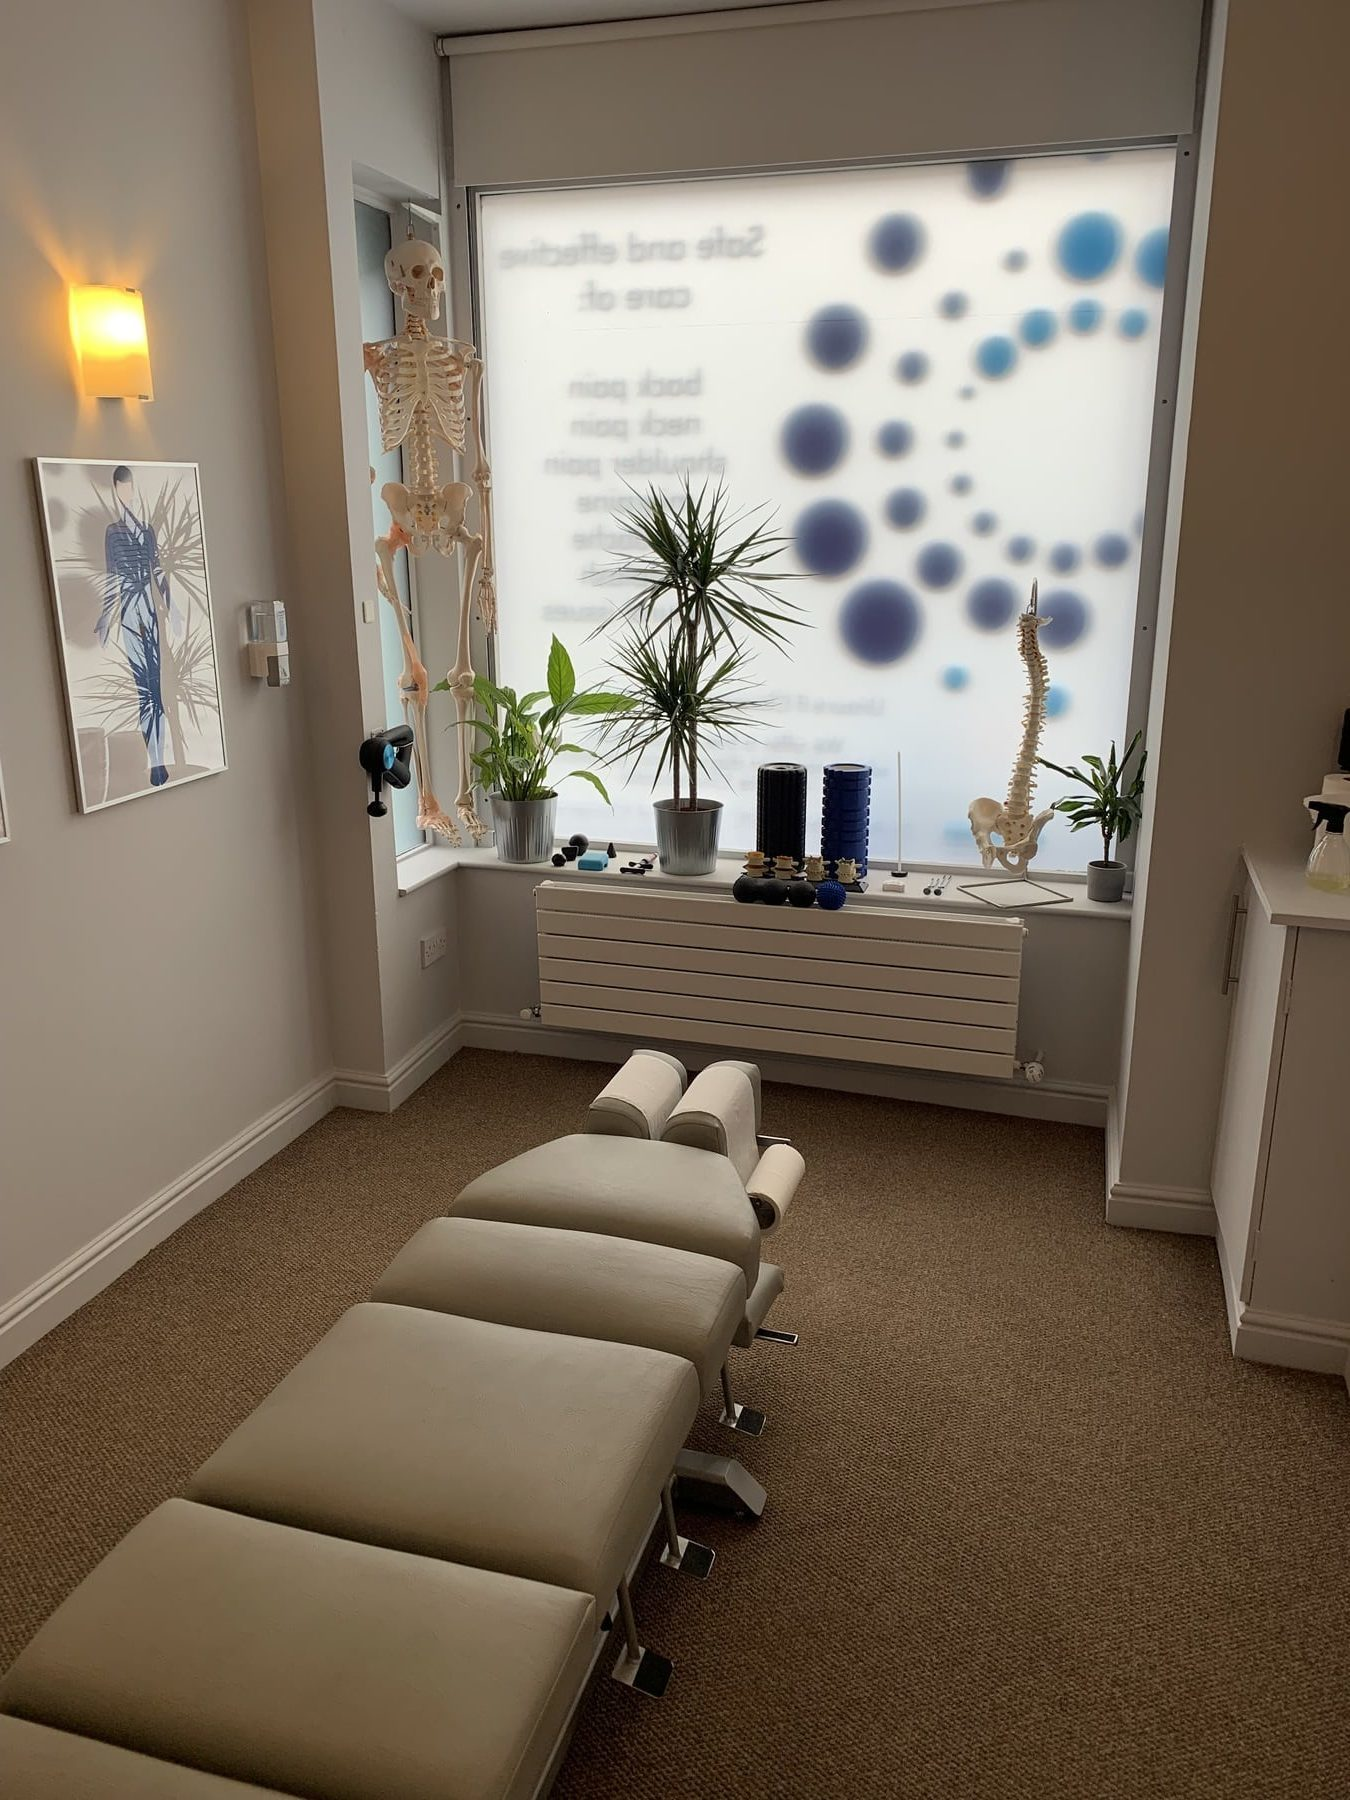 About us chiropractic treatment room 1